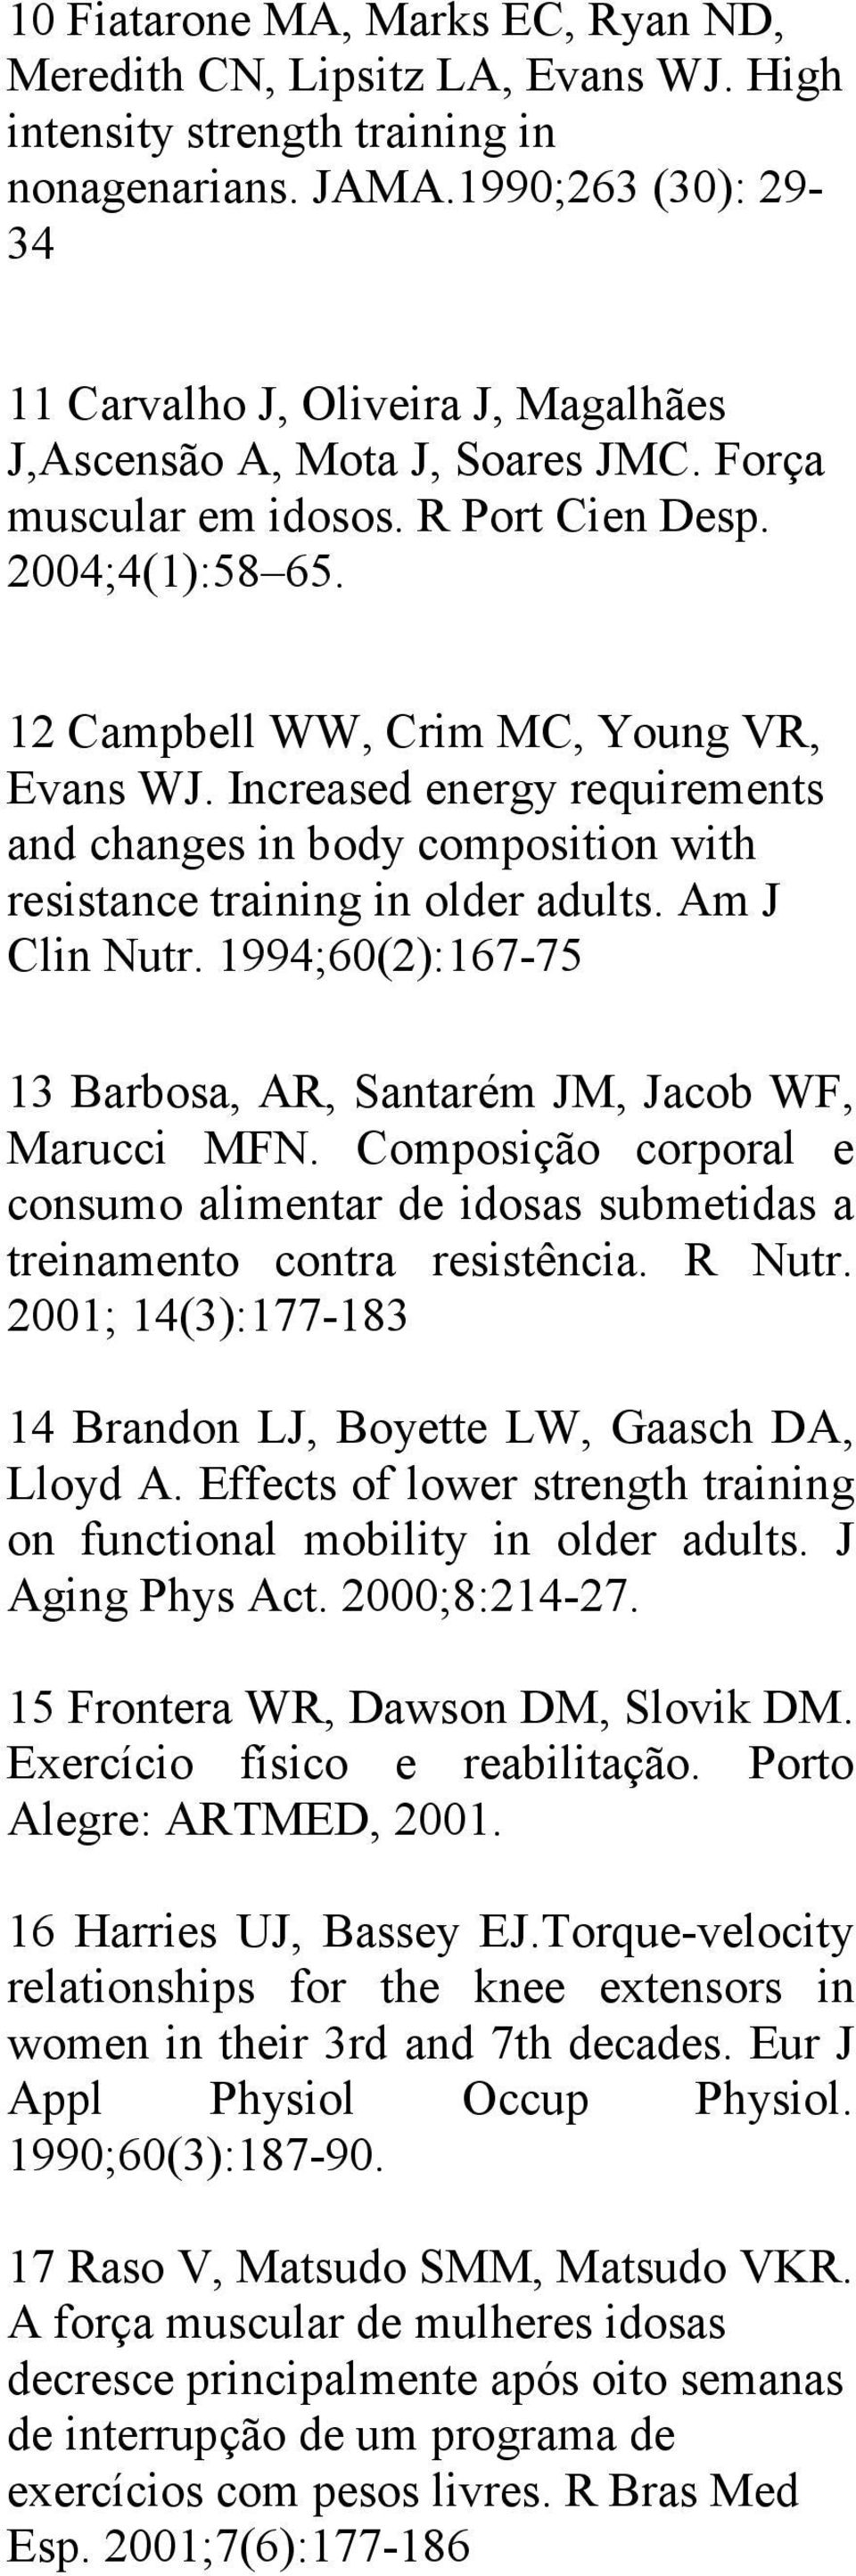 Increased energy requirements and changes in body composition with resistance training in older adults. Am J Clin Nutr. 1994;60(2):167-75 13 Barbosa, AR, Santarém JM, Jacob WF, Marucci MFN.